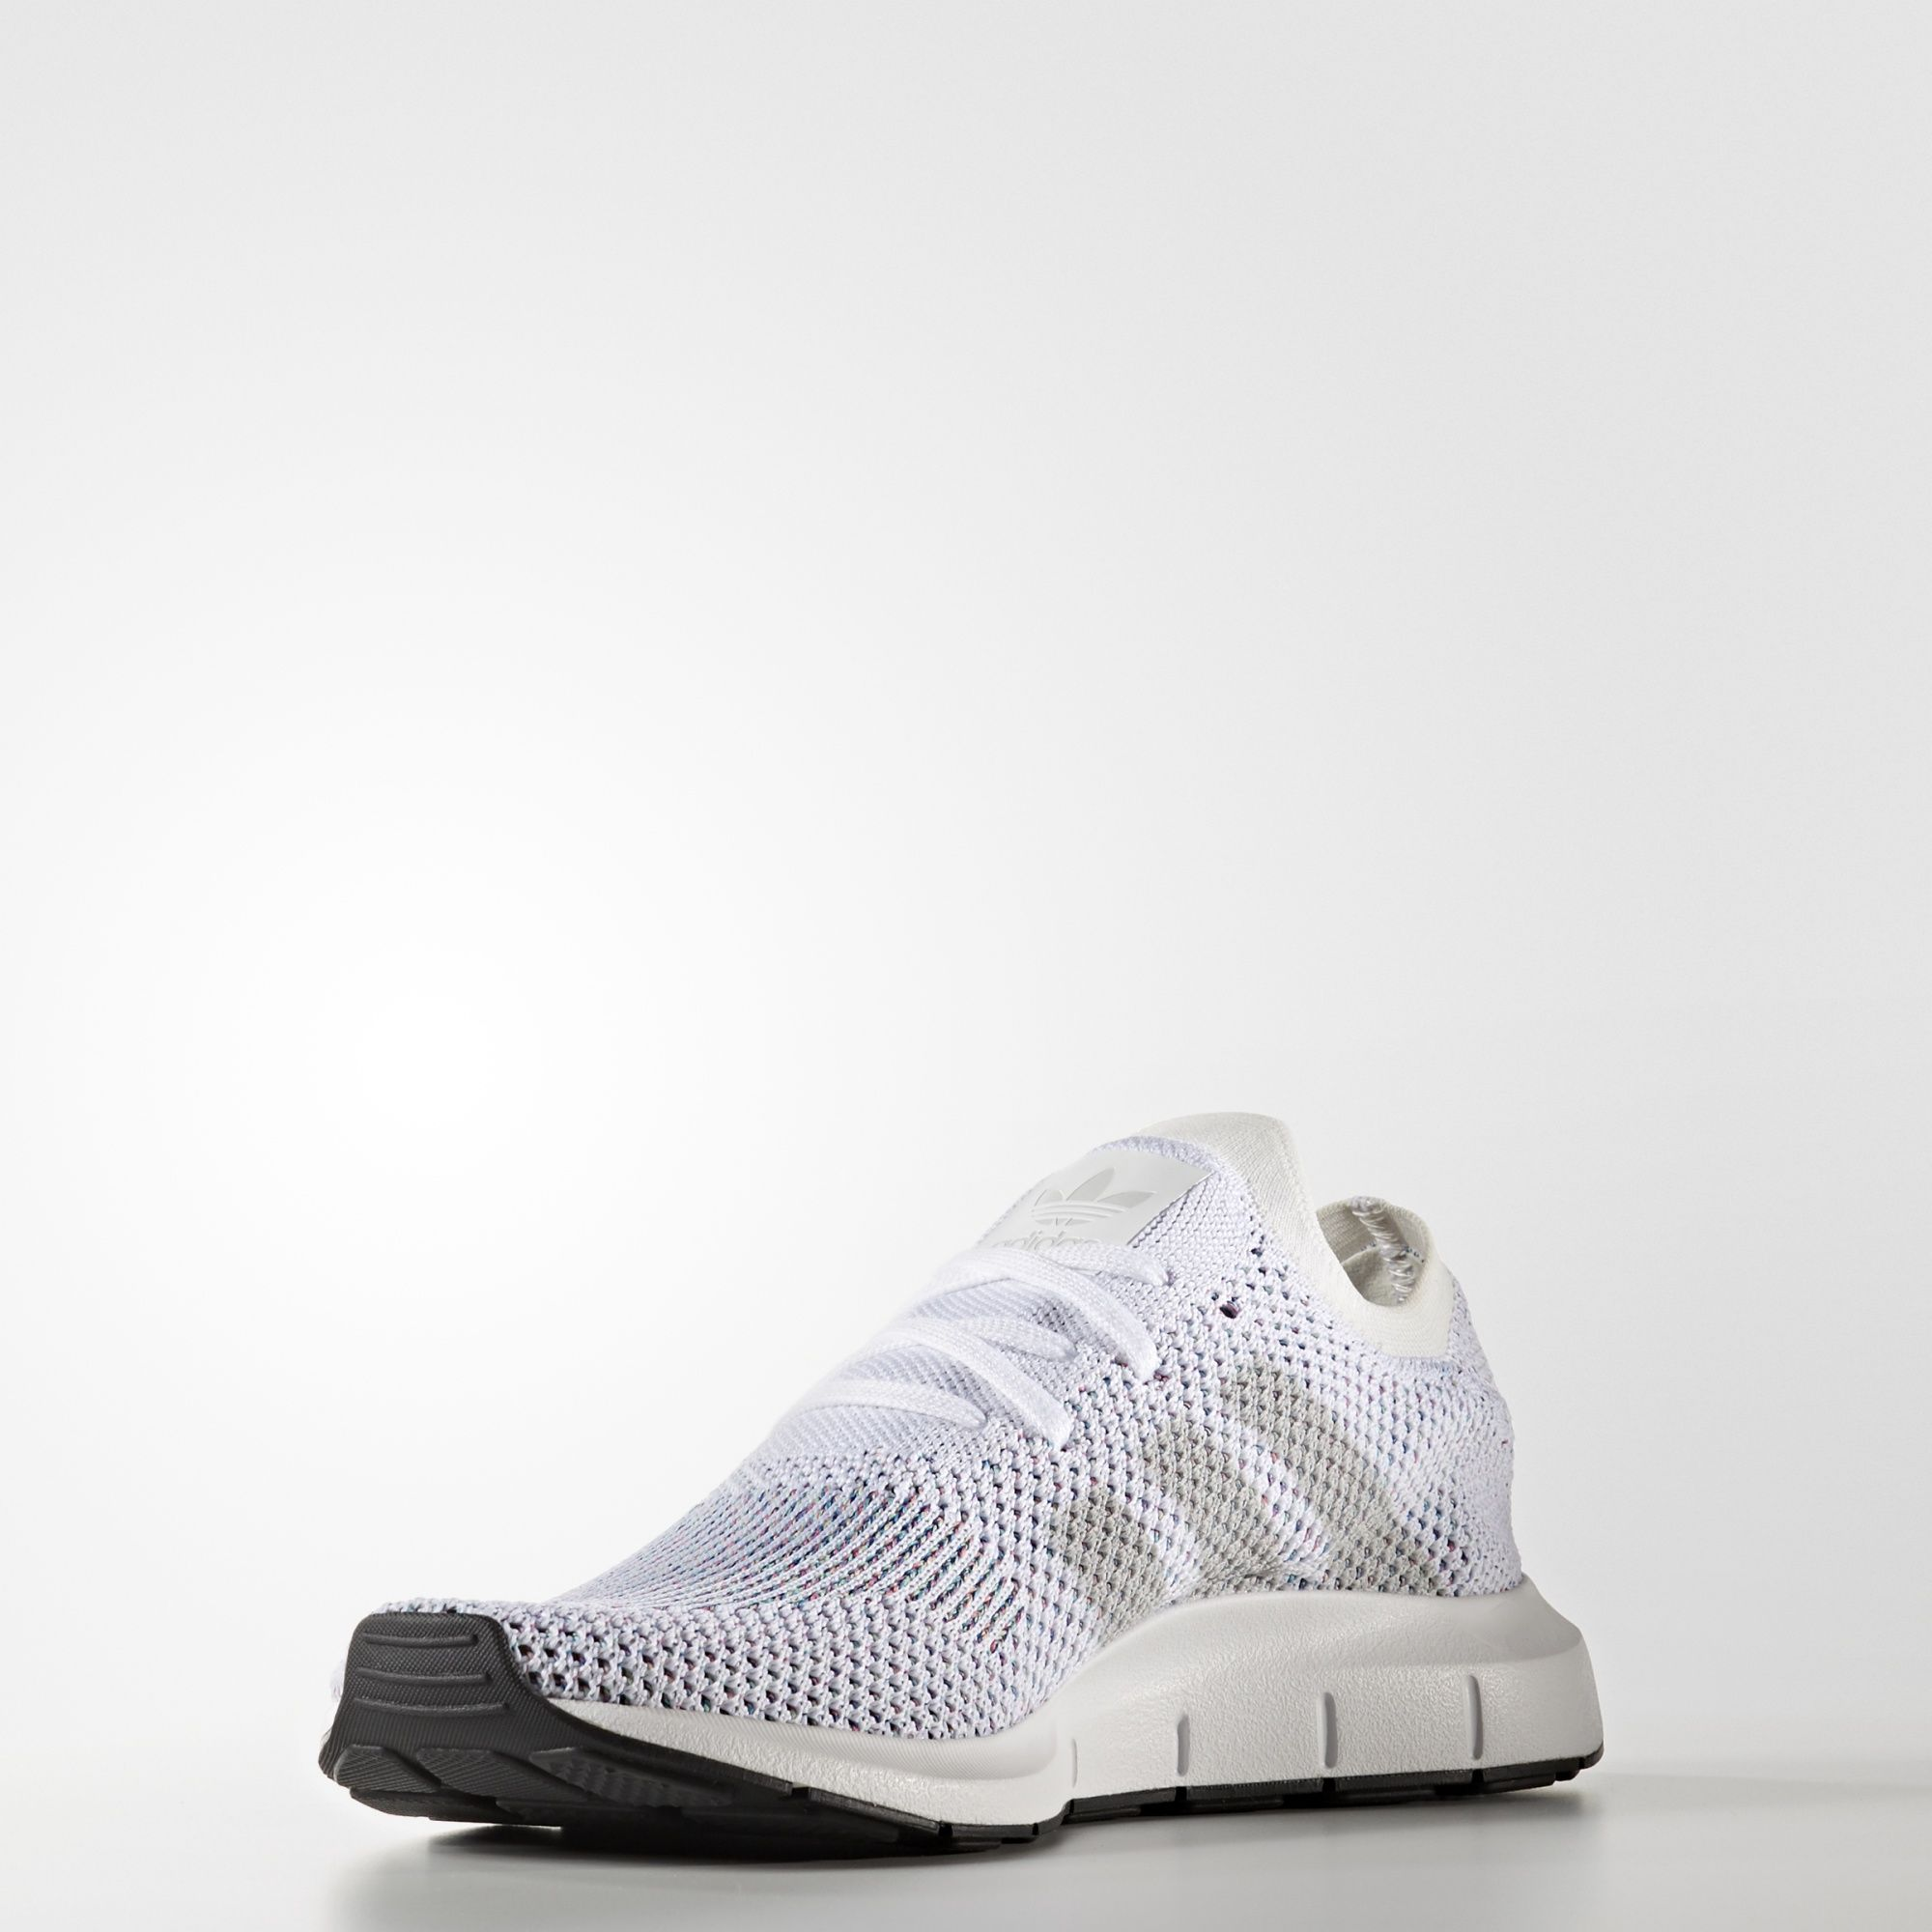 CG4126 adidas Swift Run Primeknit White 2